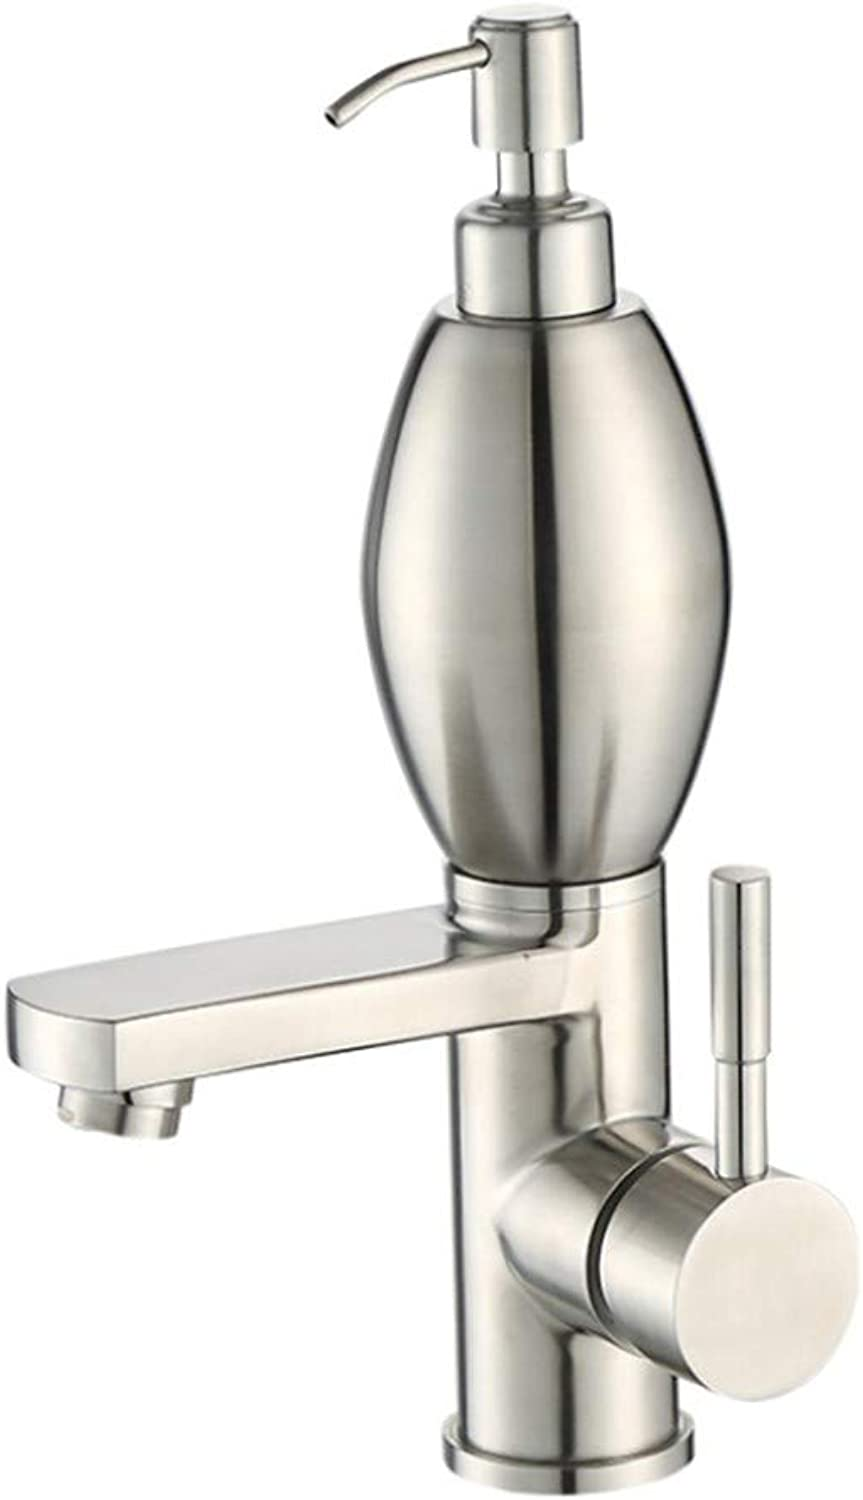 Basin Taps Swivel Spout Faucet Basin Faucet 304 Stainless Steel Single Cold and Hot greenical Faucet